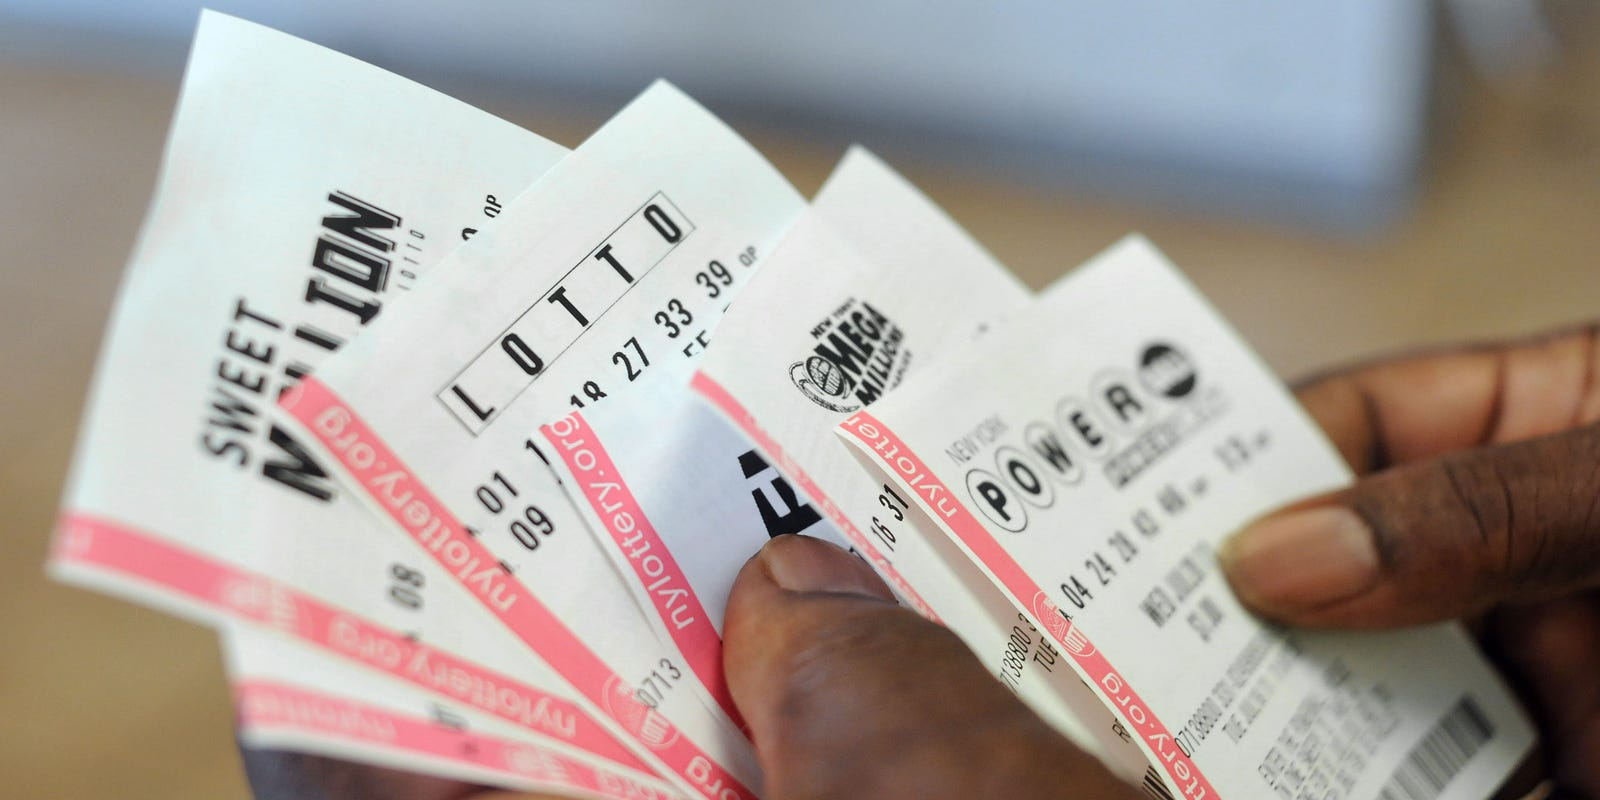 Powerball: Staten Island Stop & Shop sells two $1 million tickets